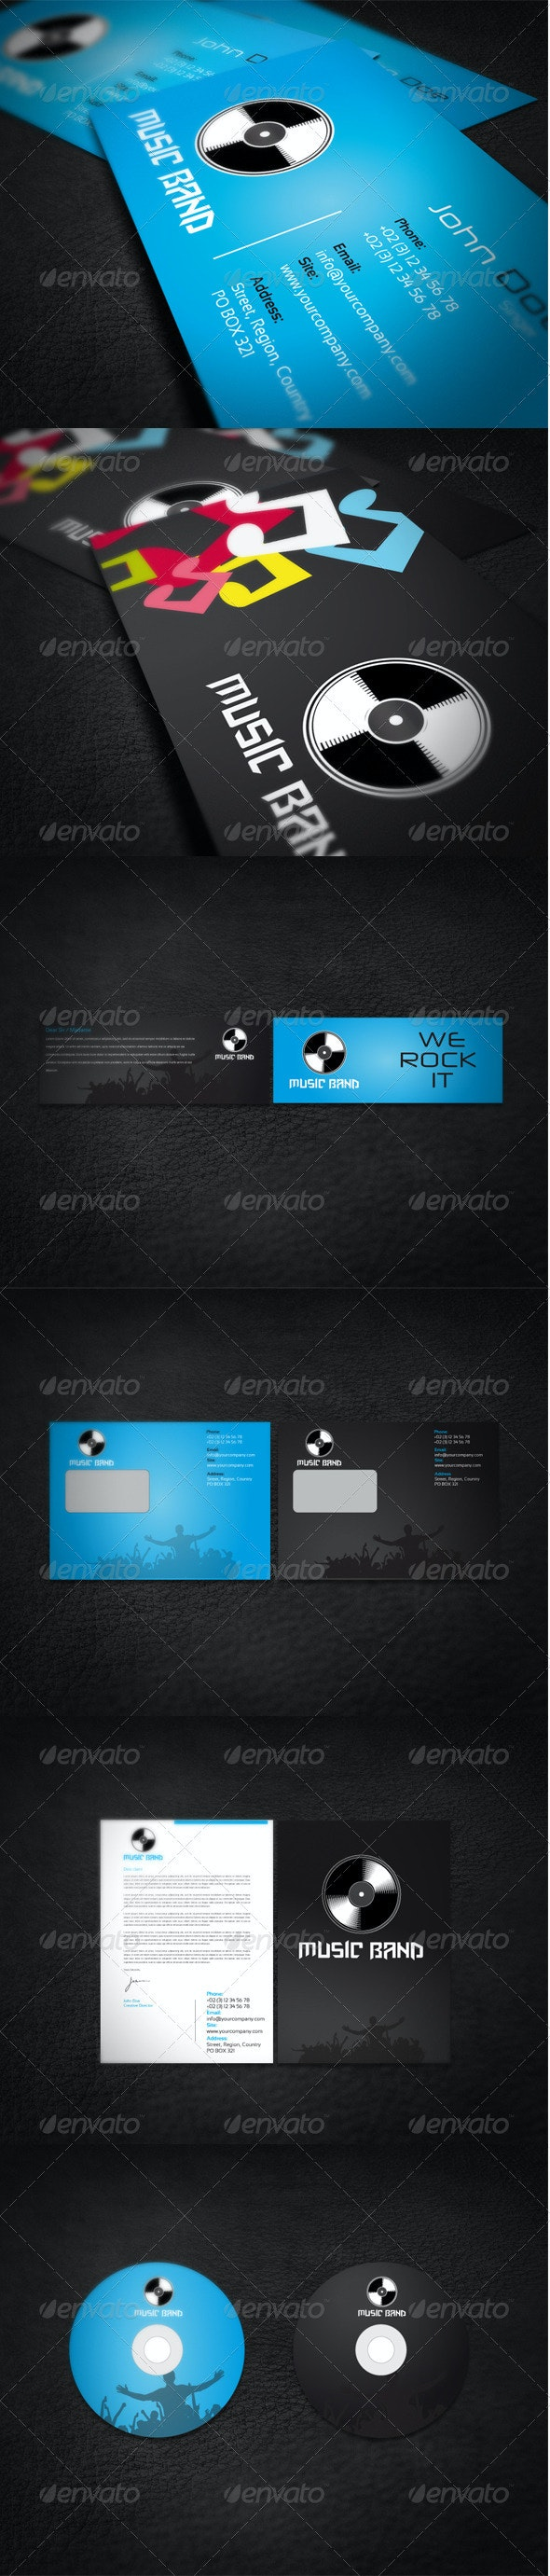 Music Band Corporate Identity - Stationery Print Templates